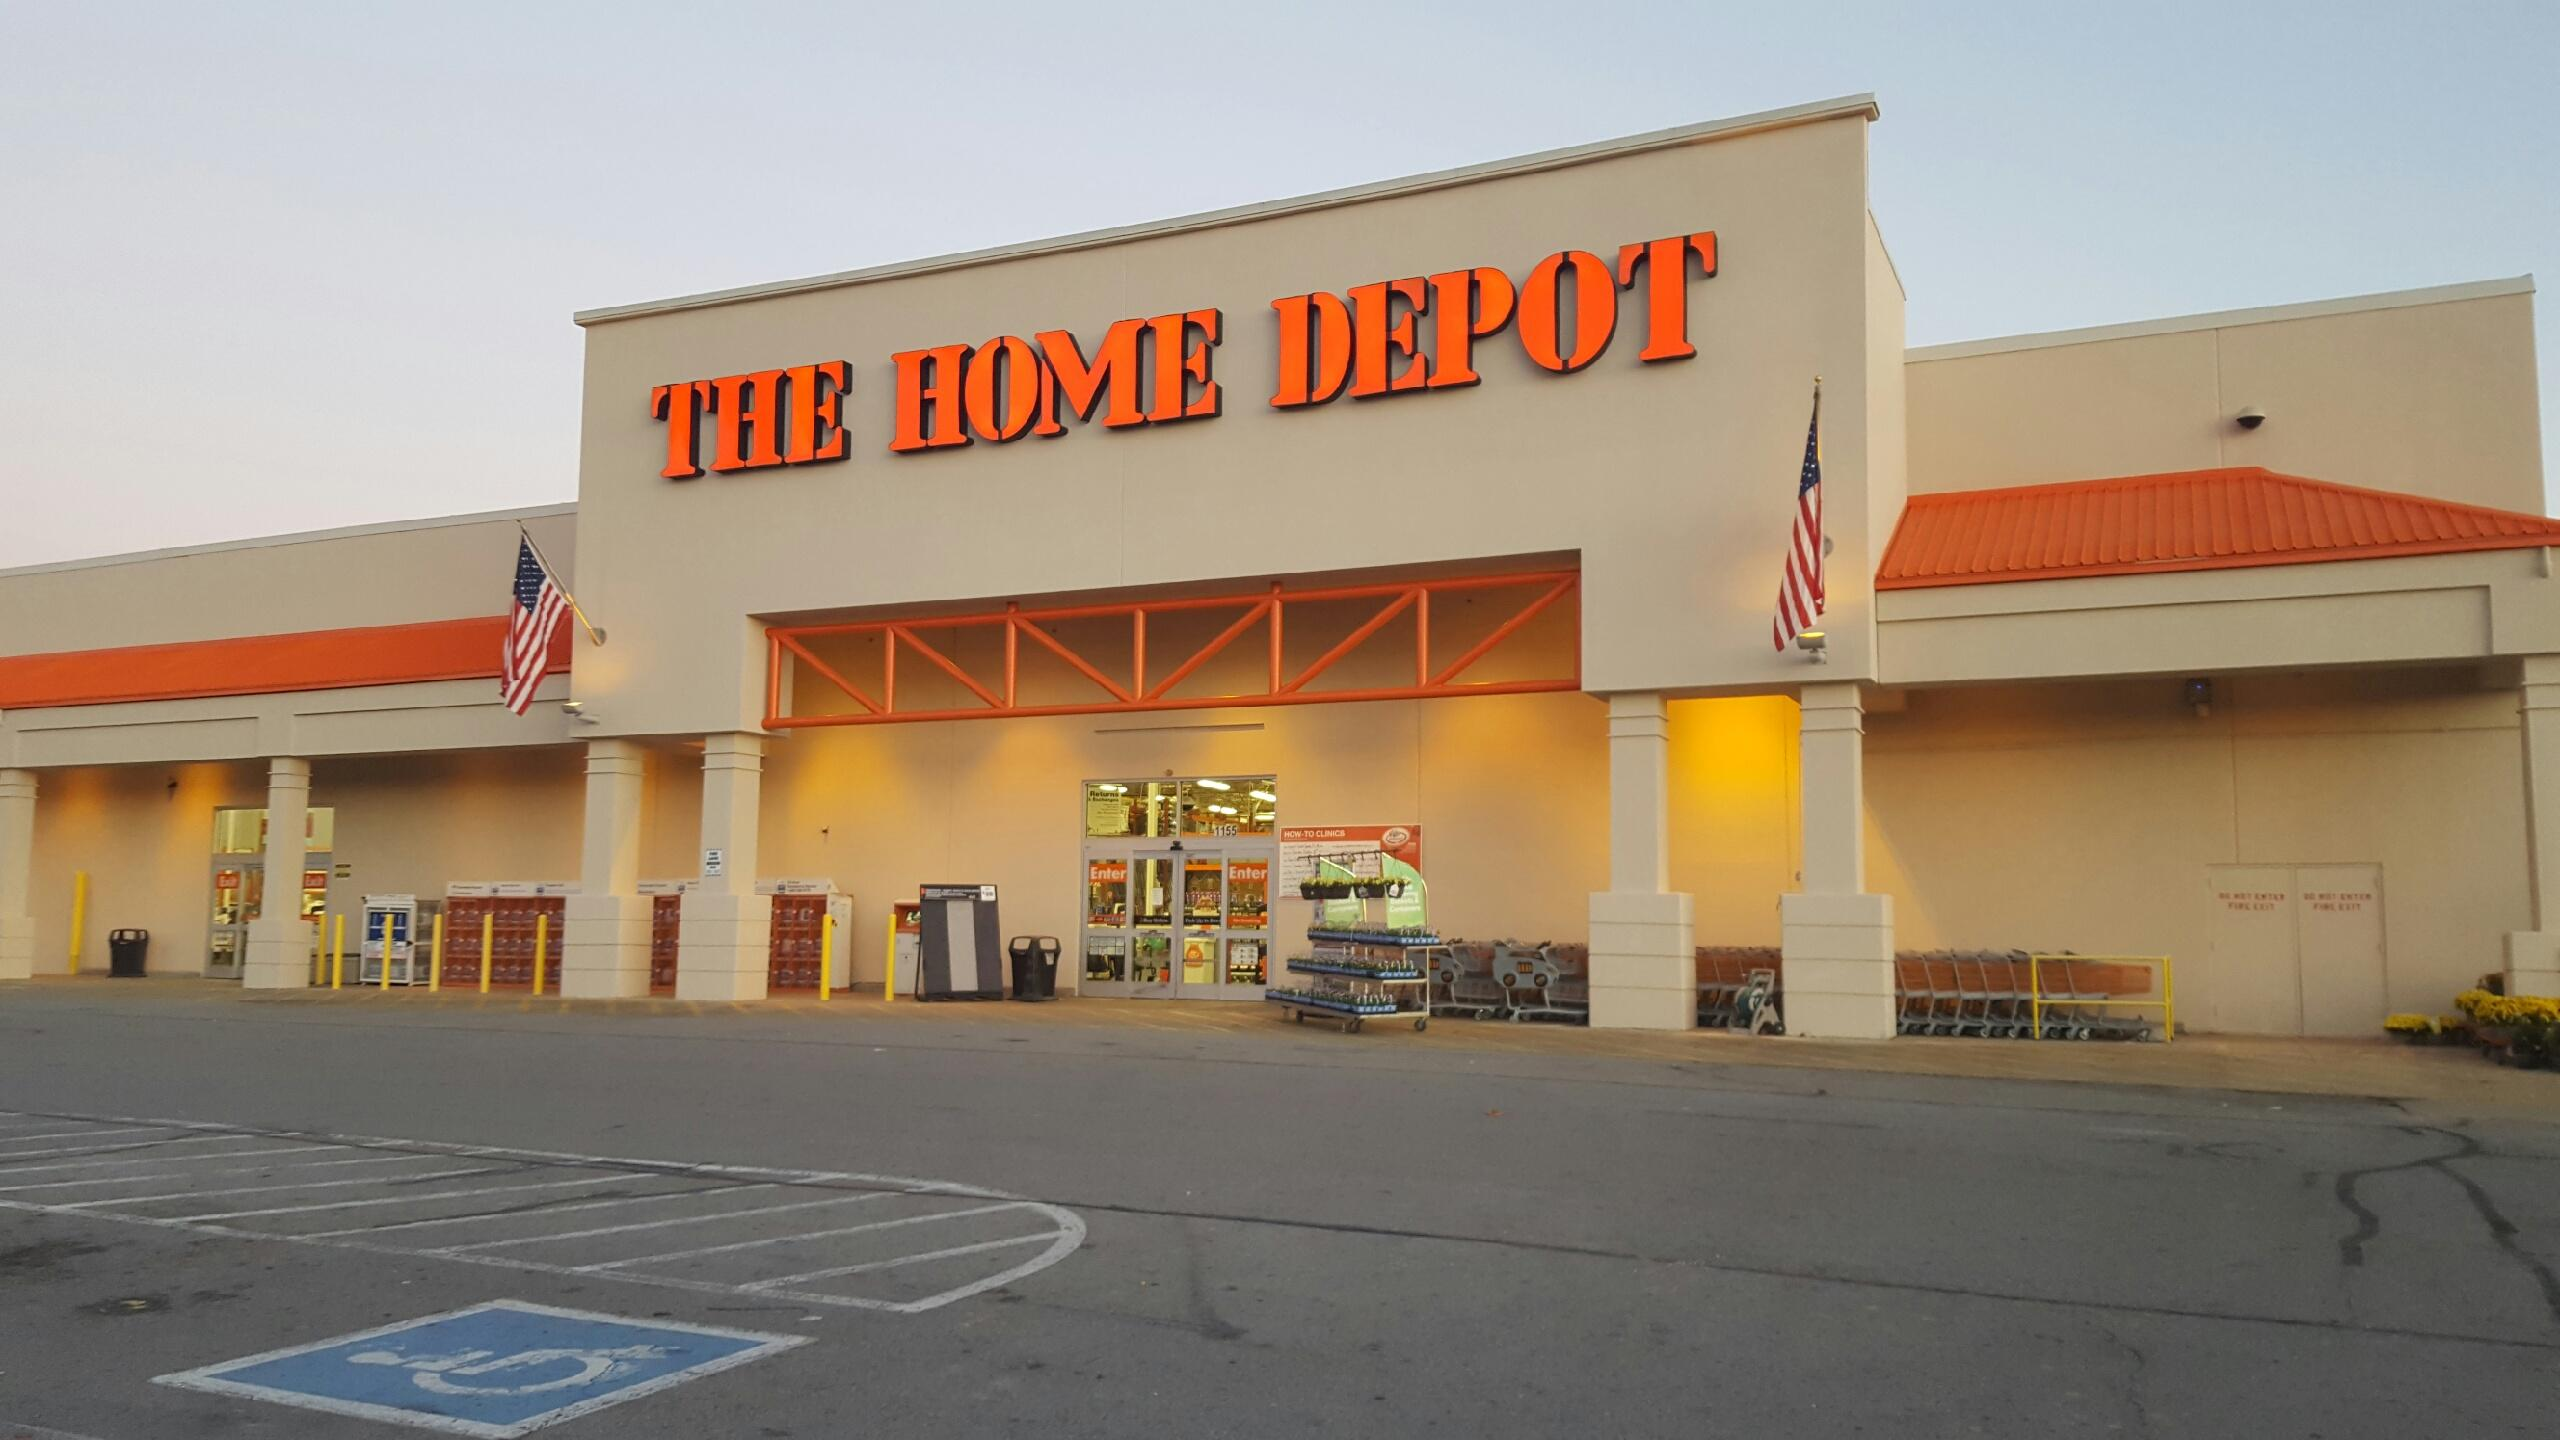 The Home Depot Antioch Tennessee Tn